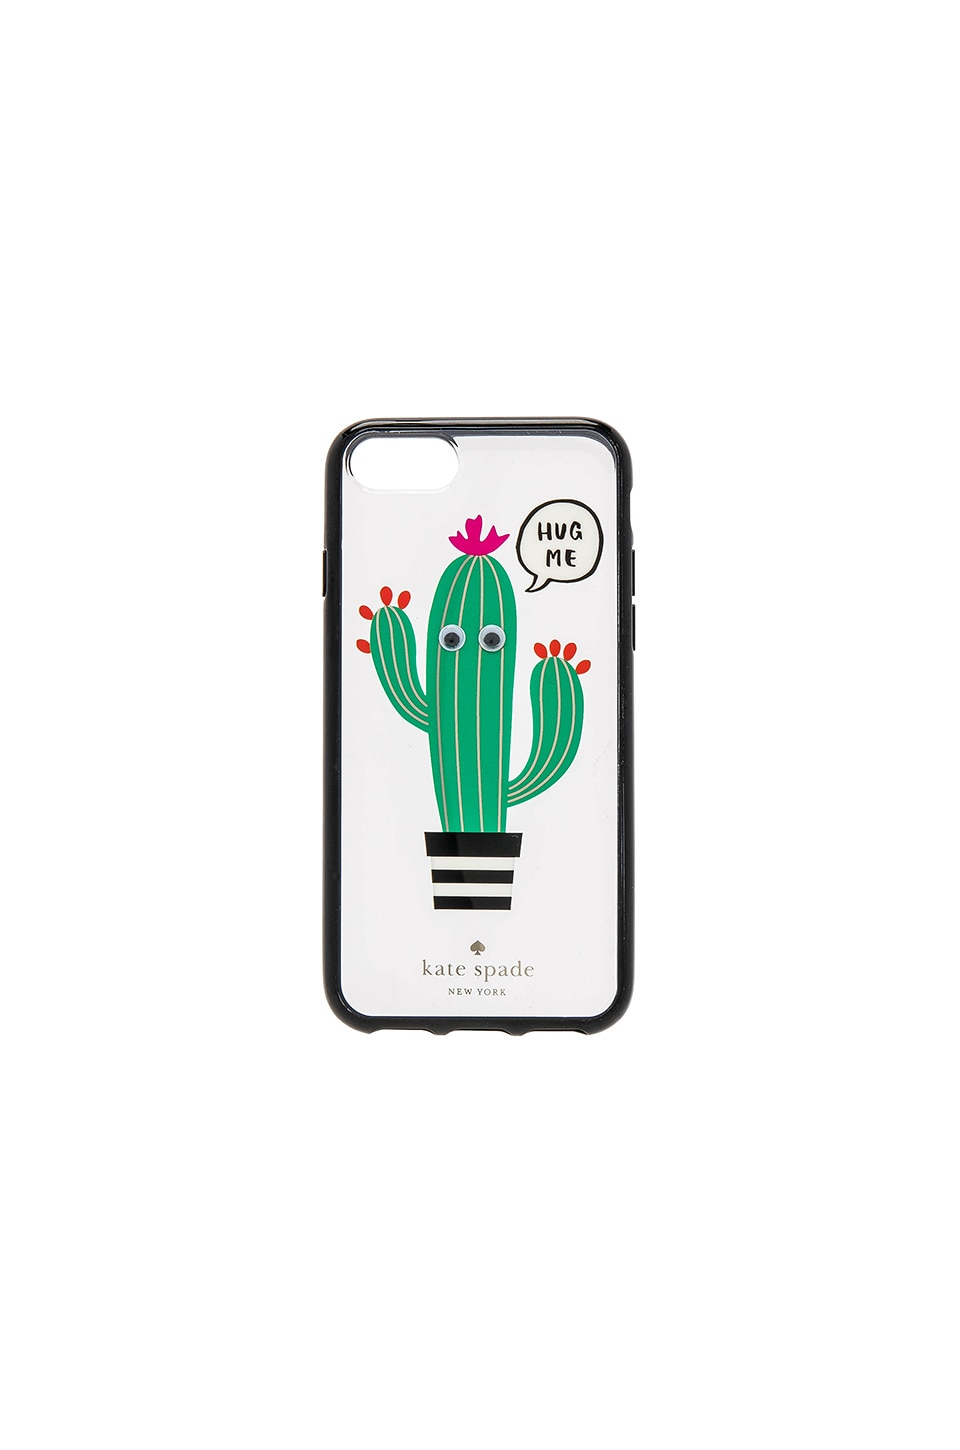 Hug Me iPhone 7 Case by Kate Spade New York